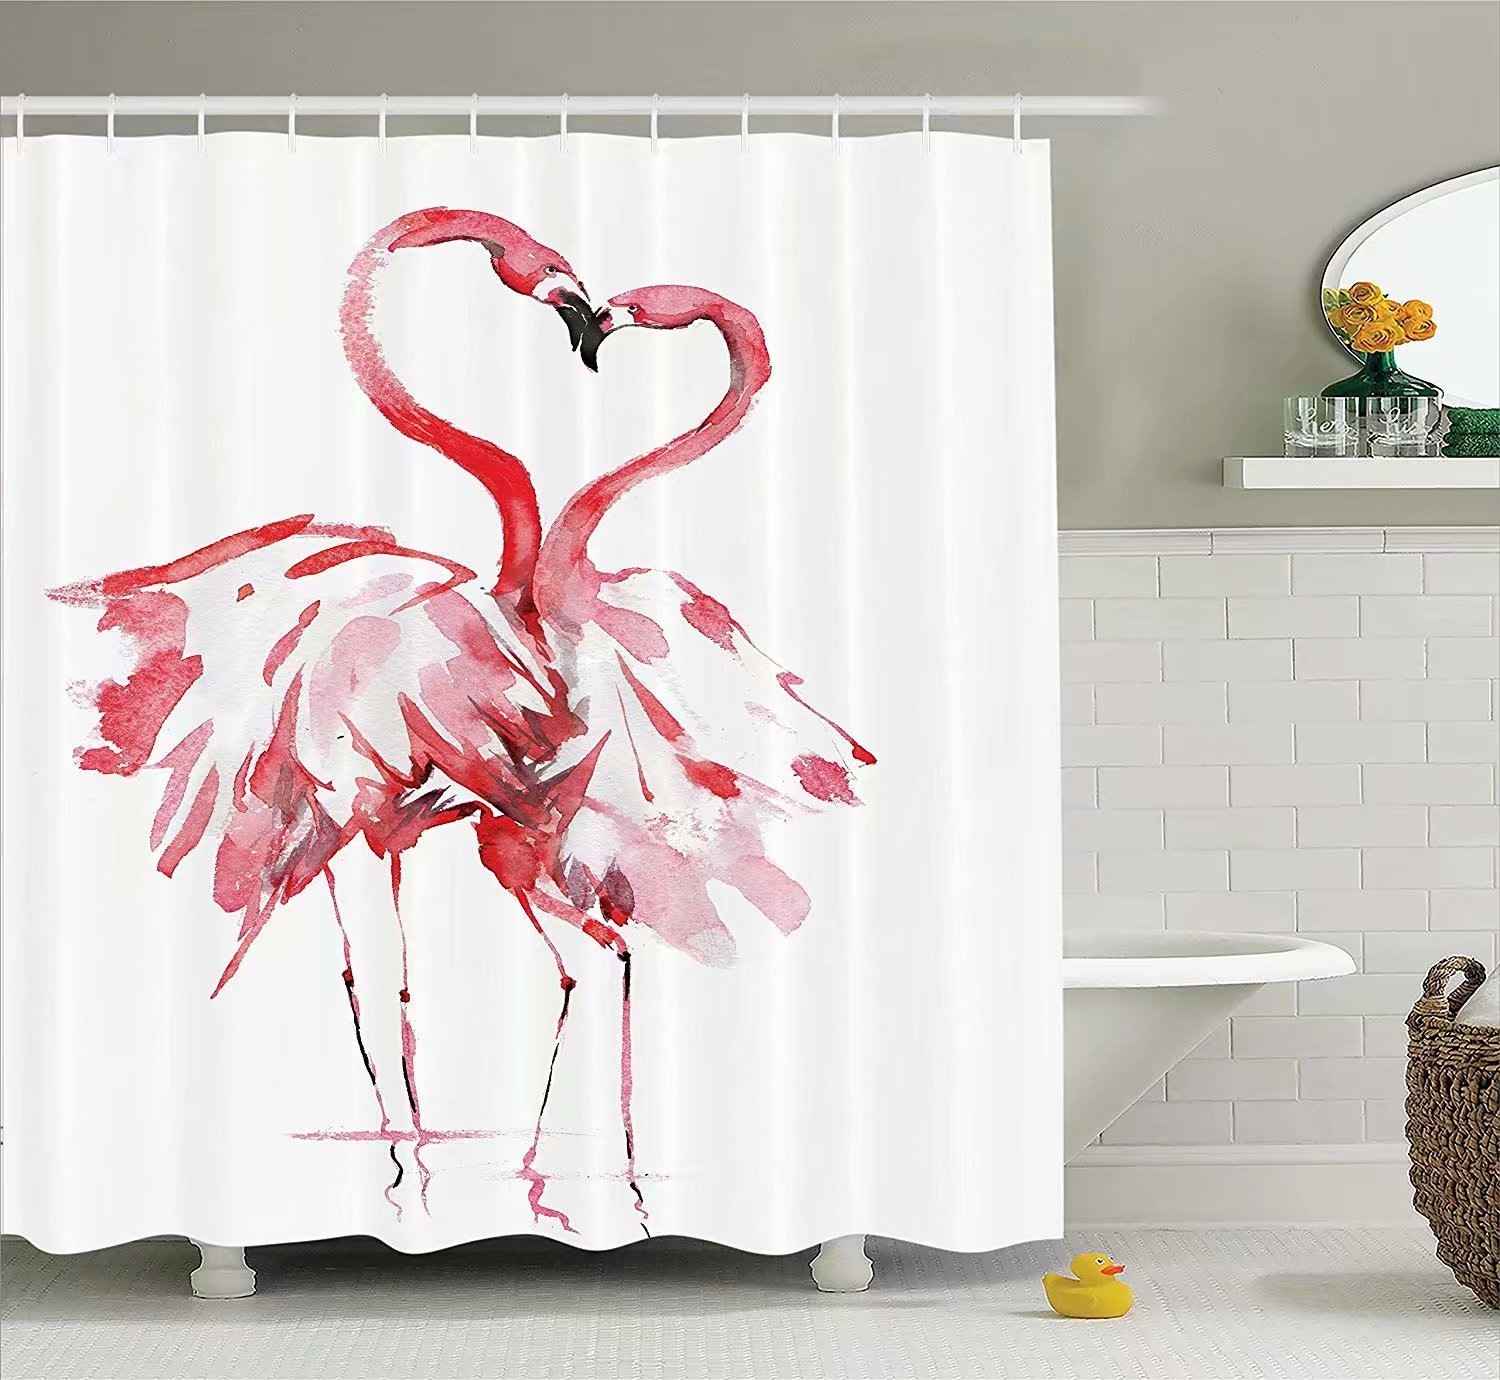 KANATSIU Flamingo Couple Kissing Watercolor Effect Art Work Shower Curtain 12 Plastic Hooks,100% Made Polyester,Mildew Resistant & Machine Washable,Width x Height is 60x72